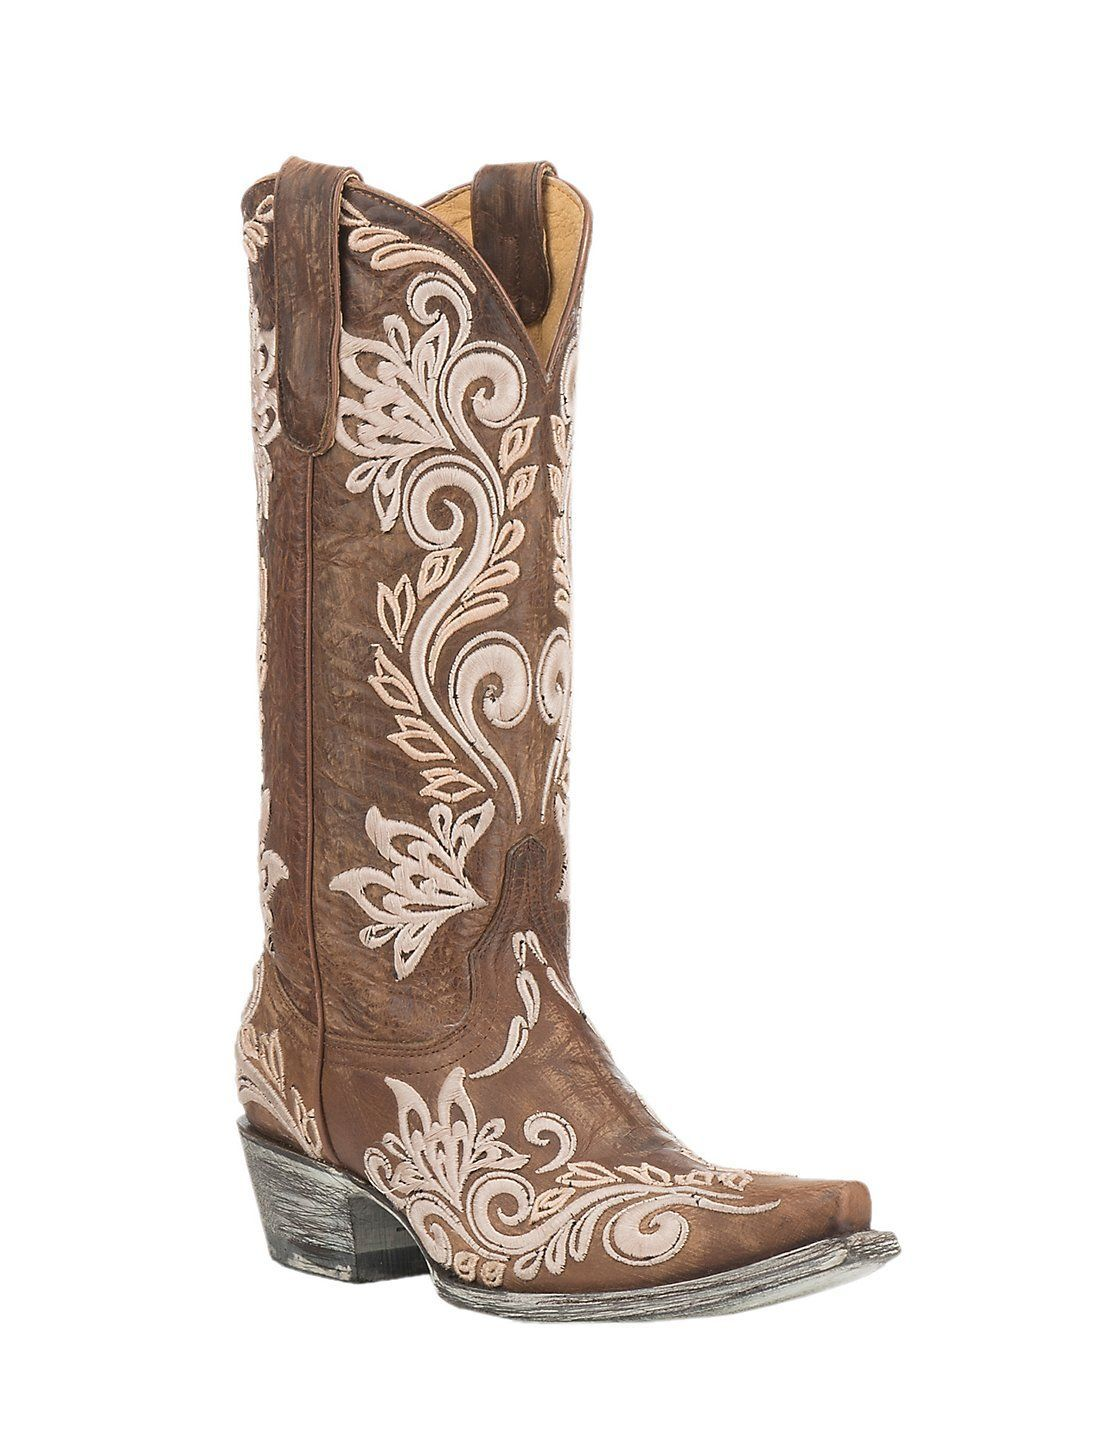 0c86ddce79e by Old Gringo Women's Brown with White Embroidery Western Snip Toe ...